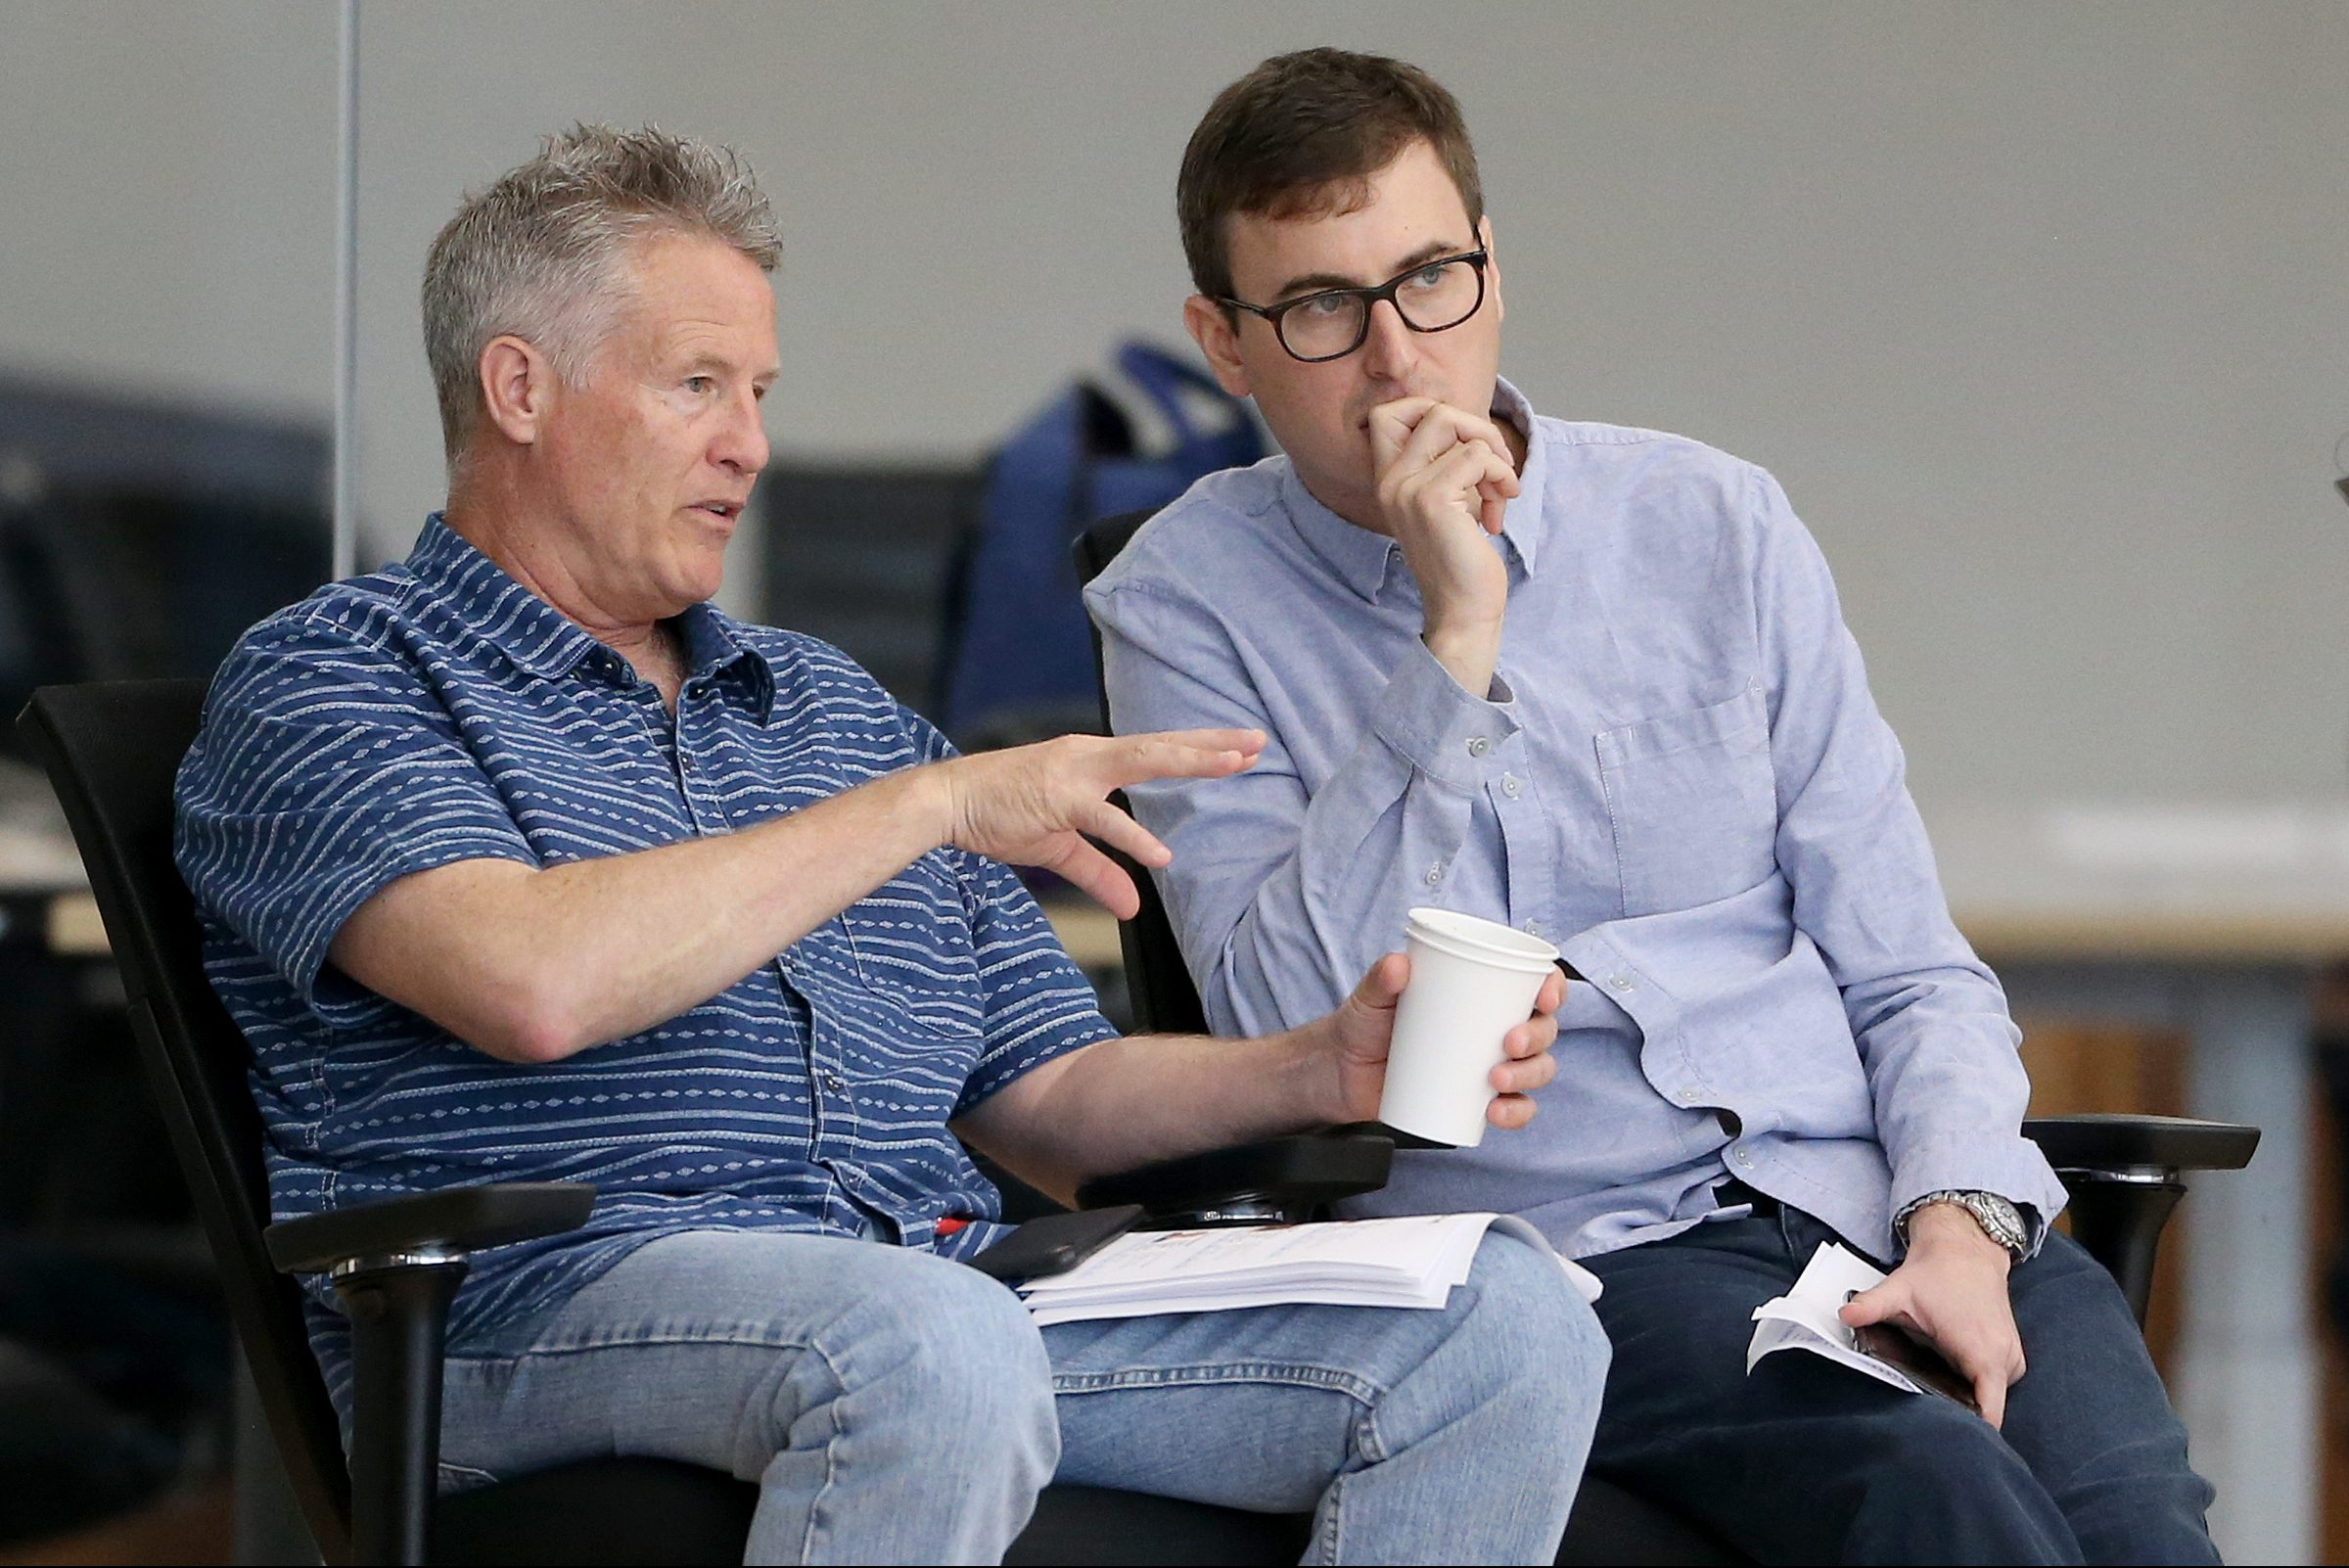 Head coach and interim general manager Brett Brown, left, and vice president of basketball operations Ned Cohen watch prospects during a pre-draft workout at the Sixers Training Complex in Camden, N.J., on Wednesday, June 13, 2018.